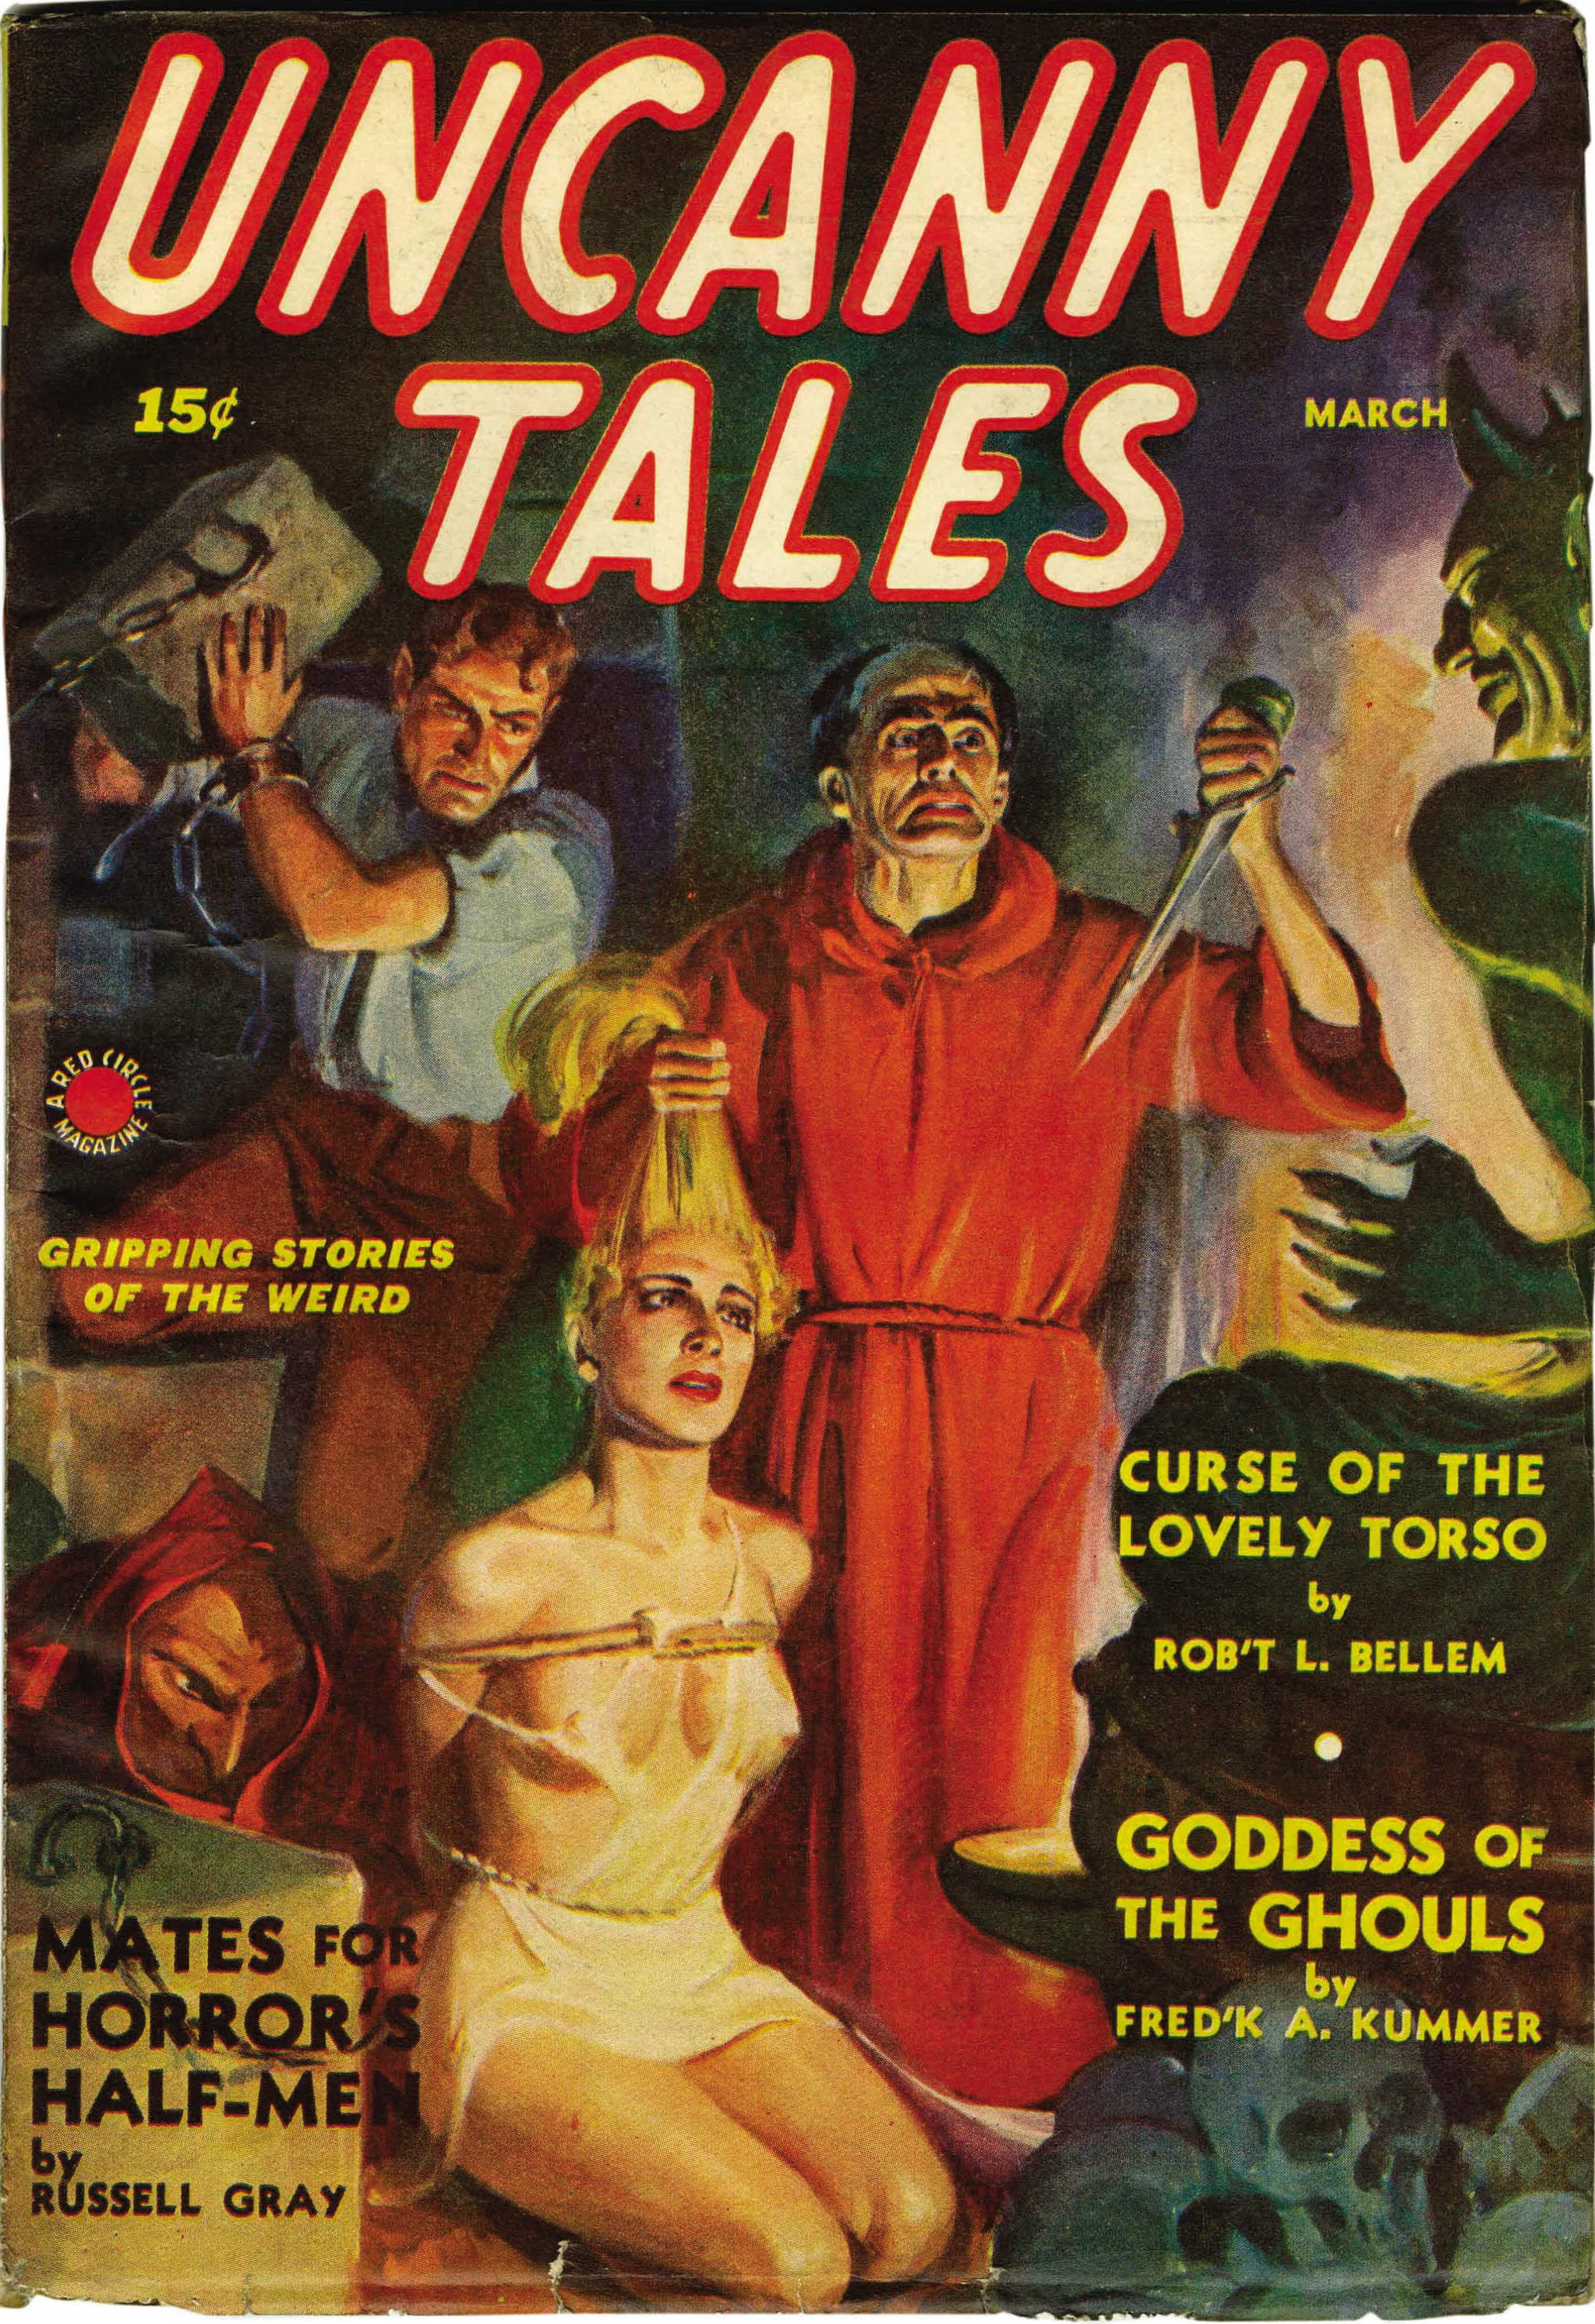 Mates For Horror's Half-Men. 36990031-lf thumbnail. Uncanny Tales 1940  March thumbnail